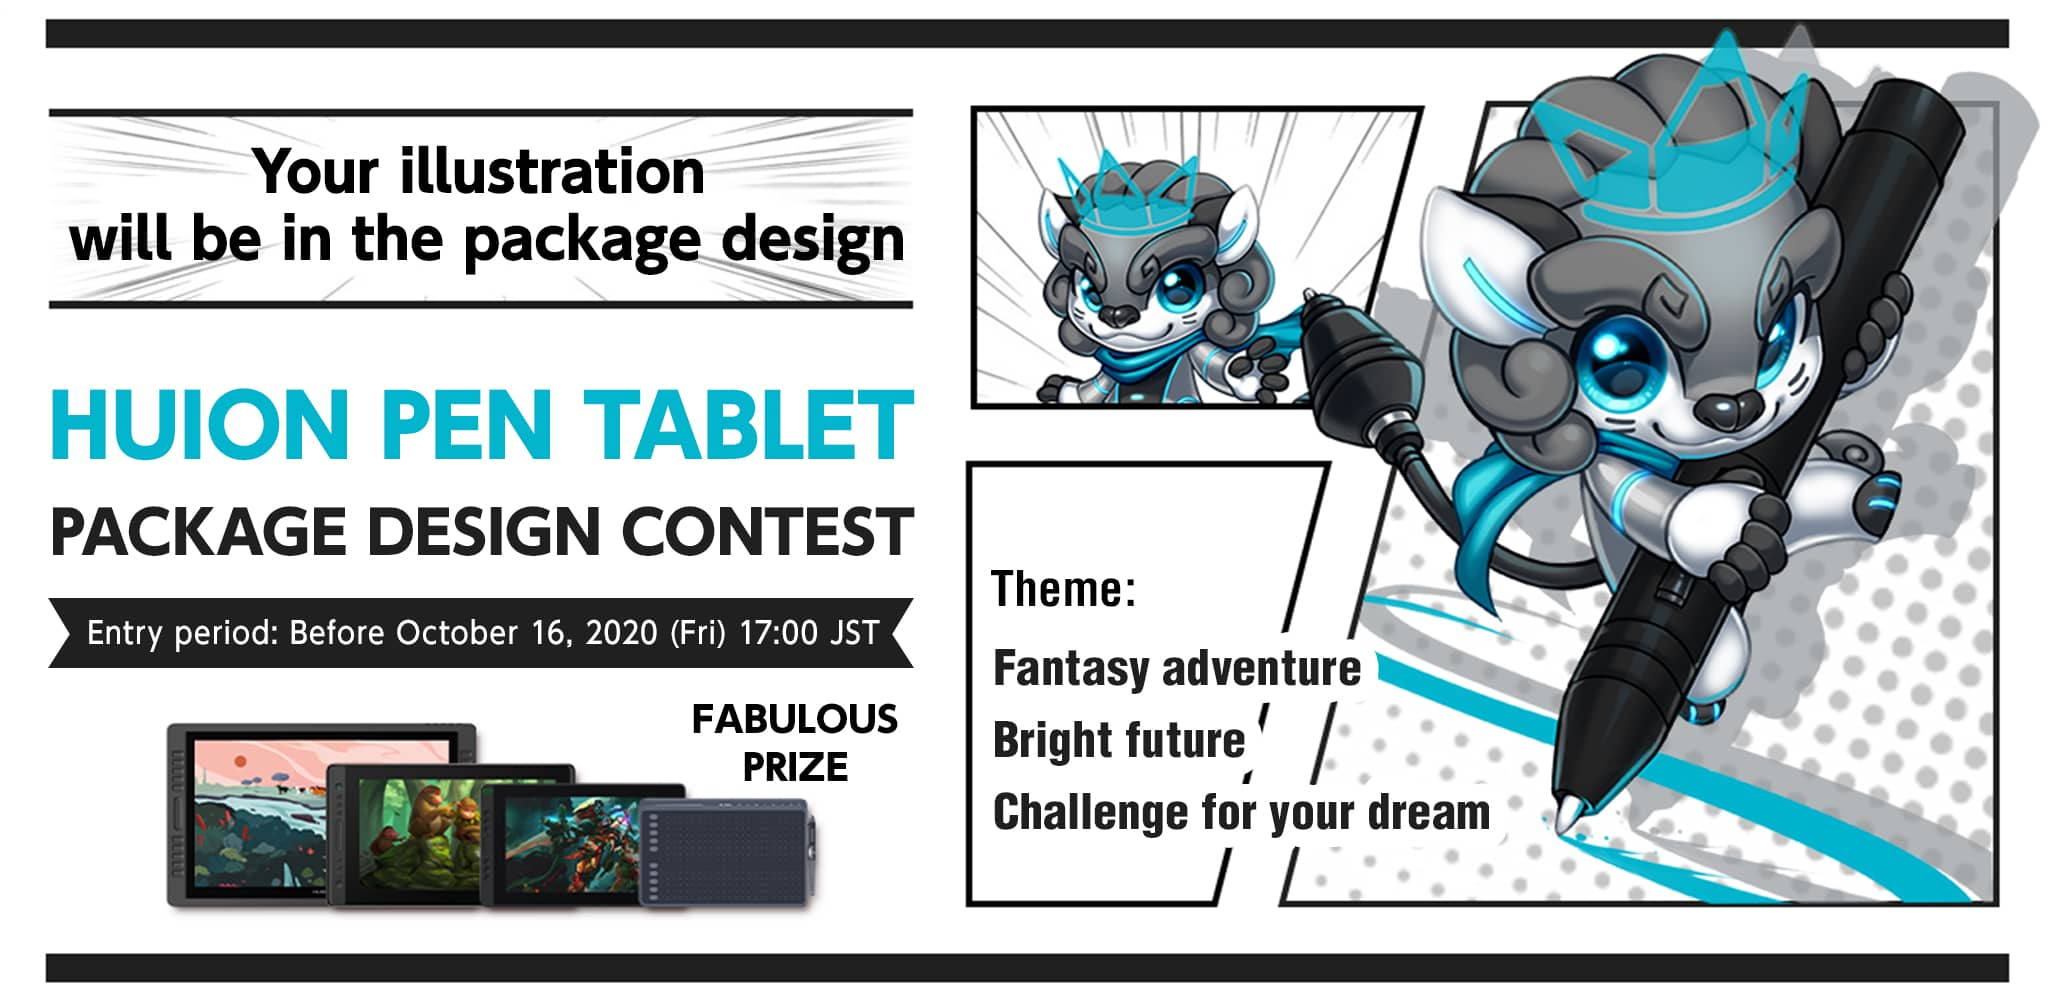 HUION Pen Tablet Package Design Contest